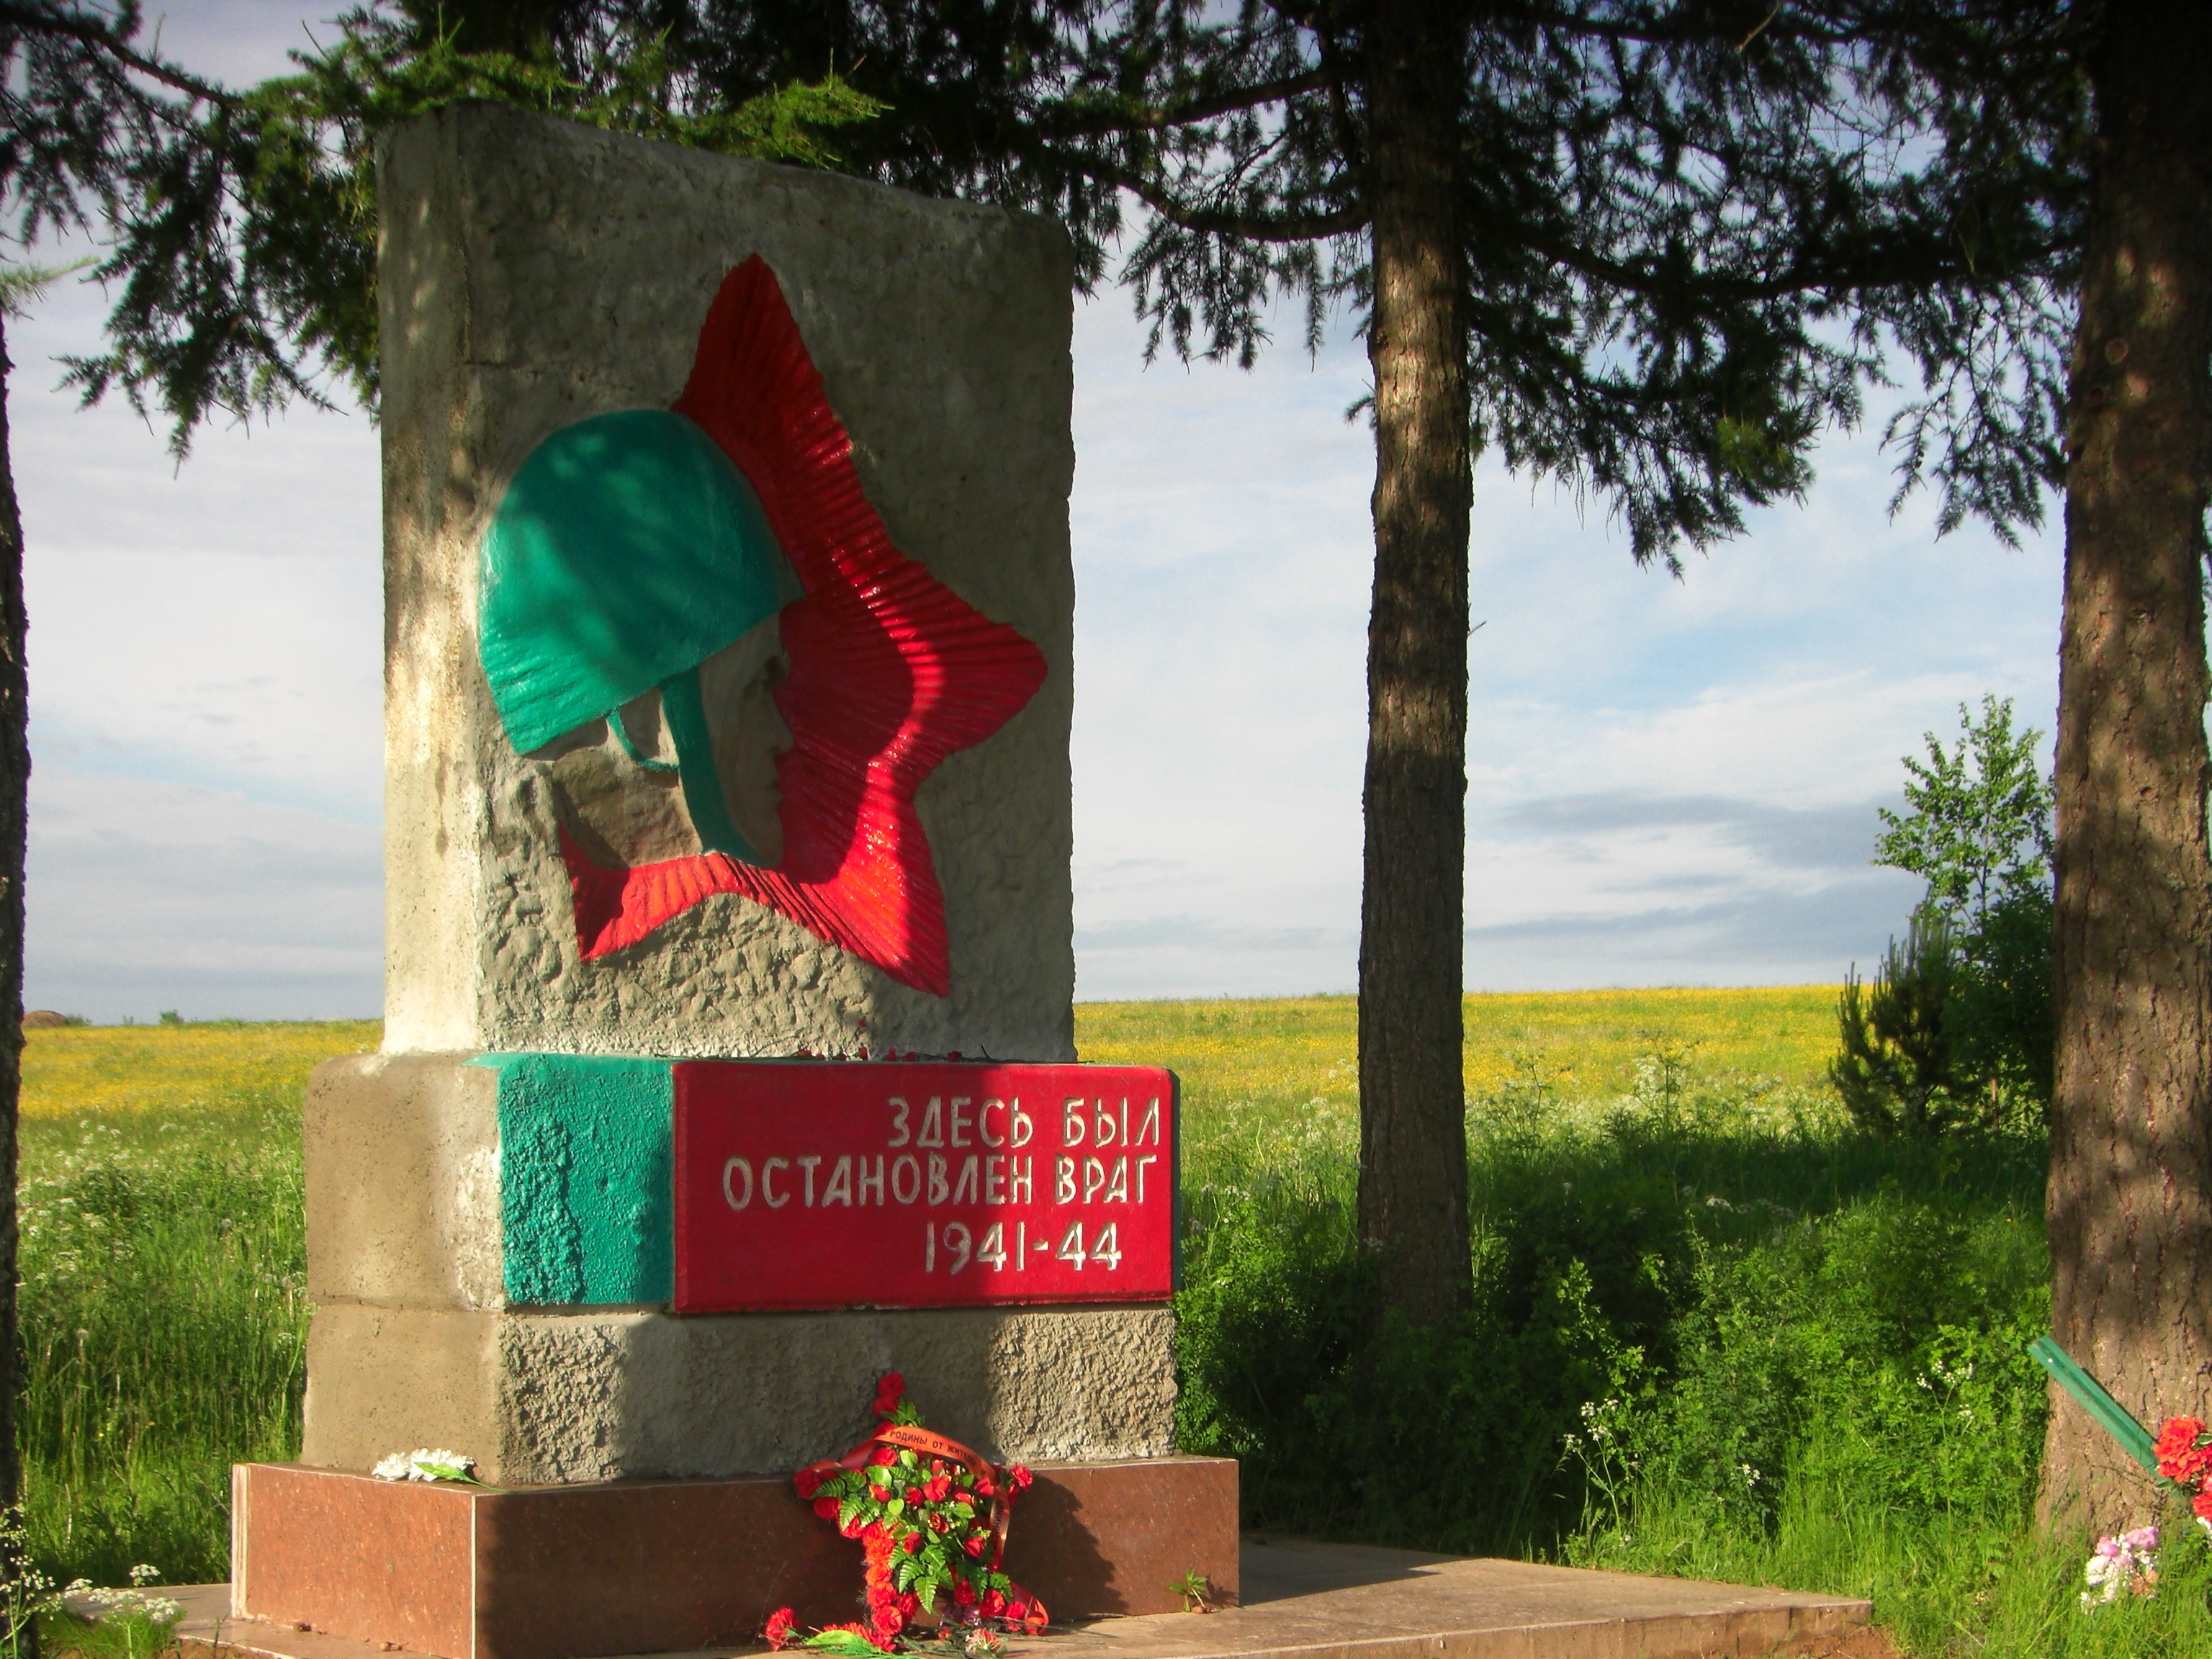 memorial close to the Svir River in Russia with 'The enemy was stopped here'